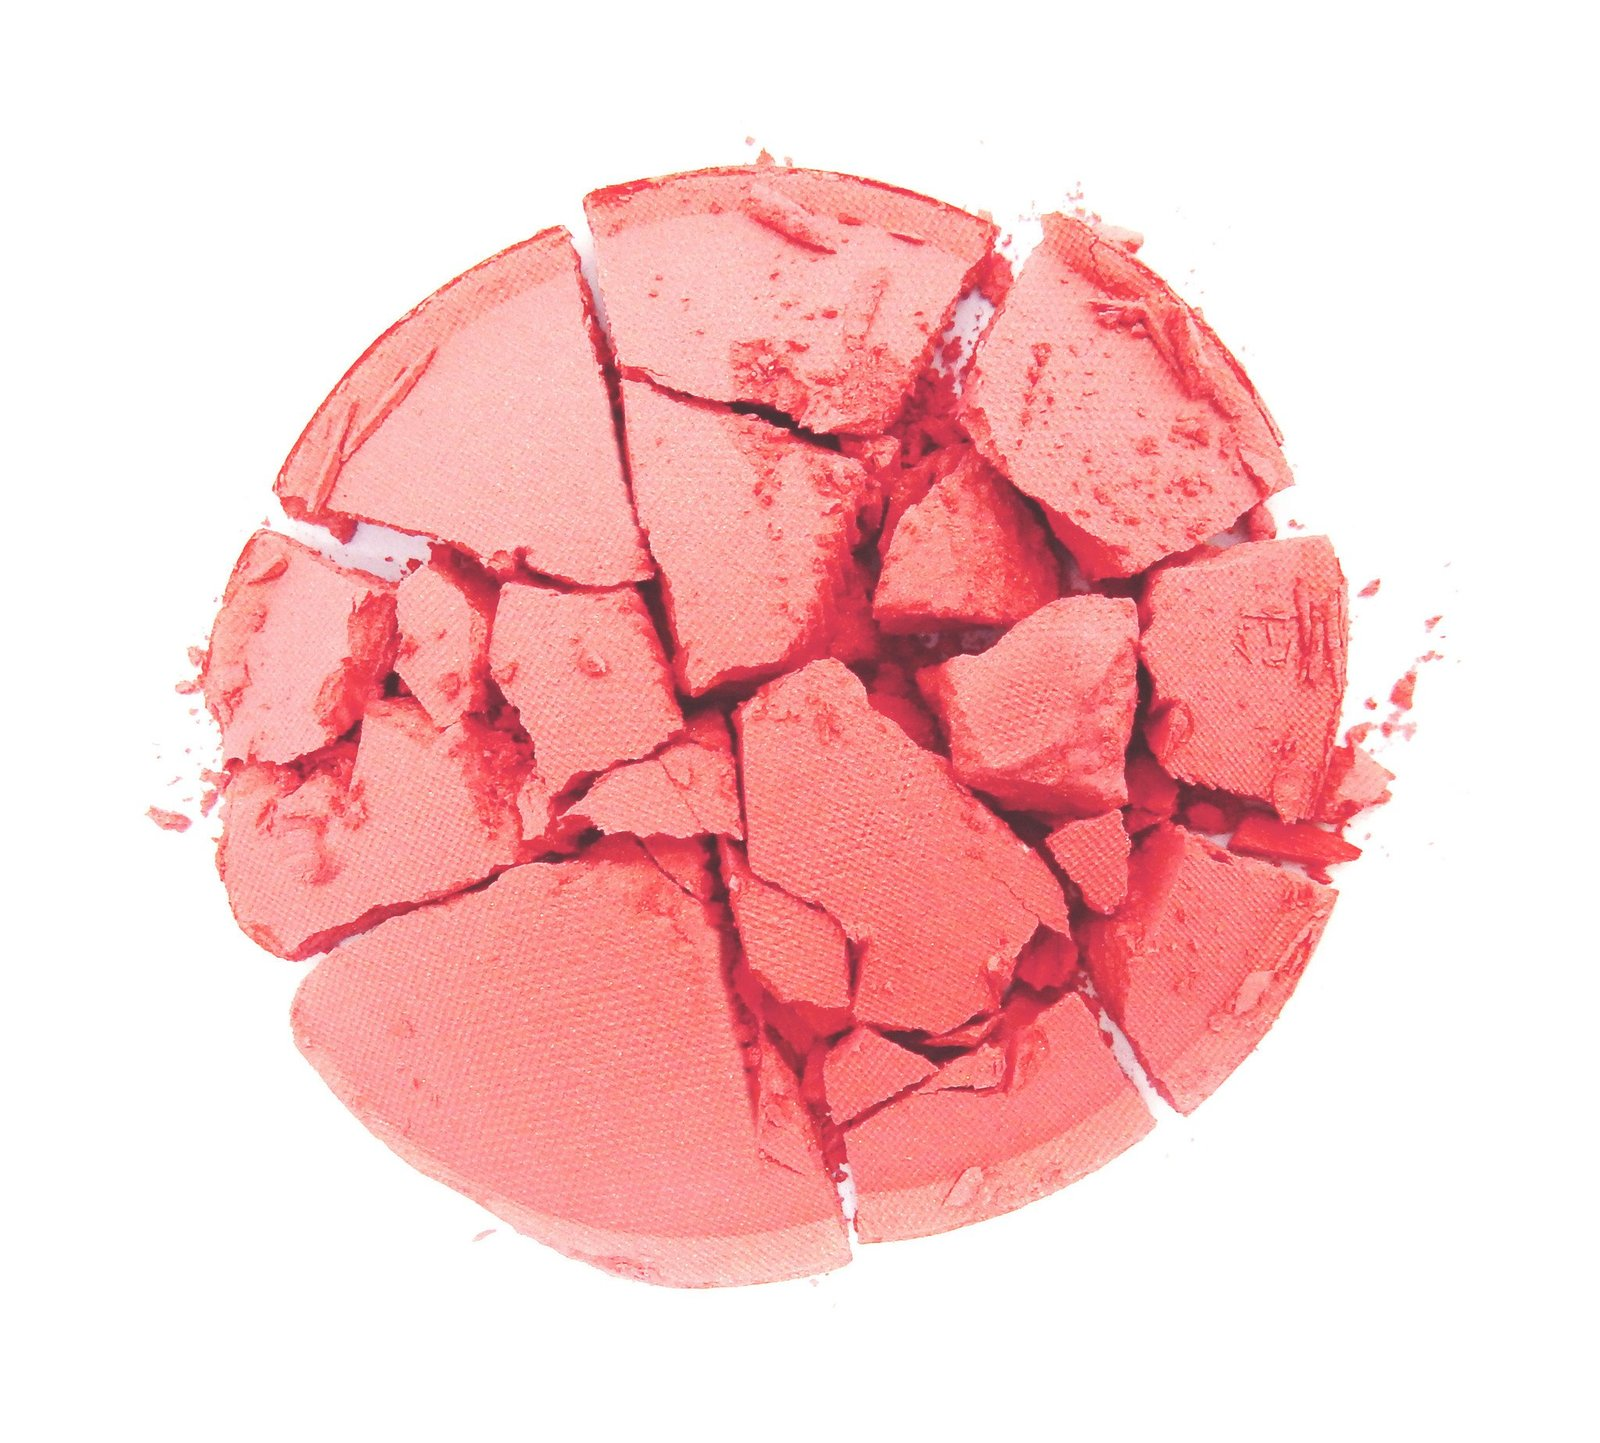 W7 Candy Blush (Scandal / Explosion) image